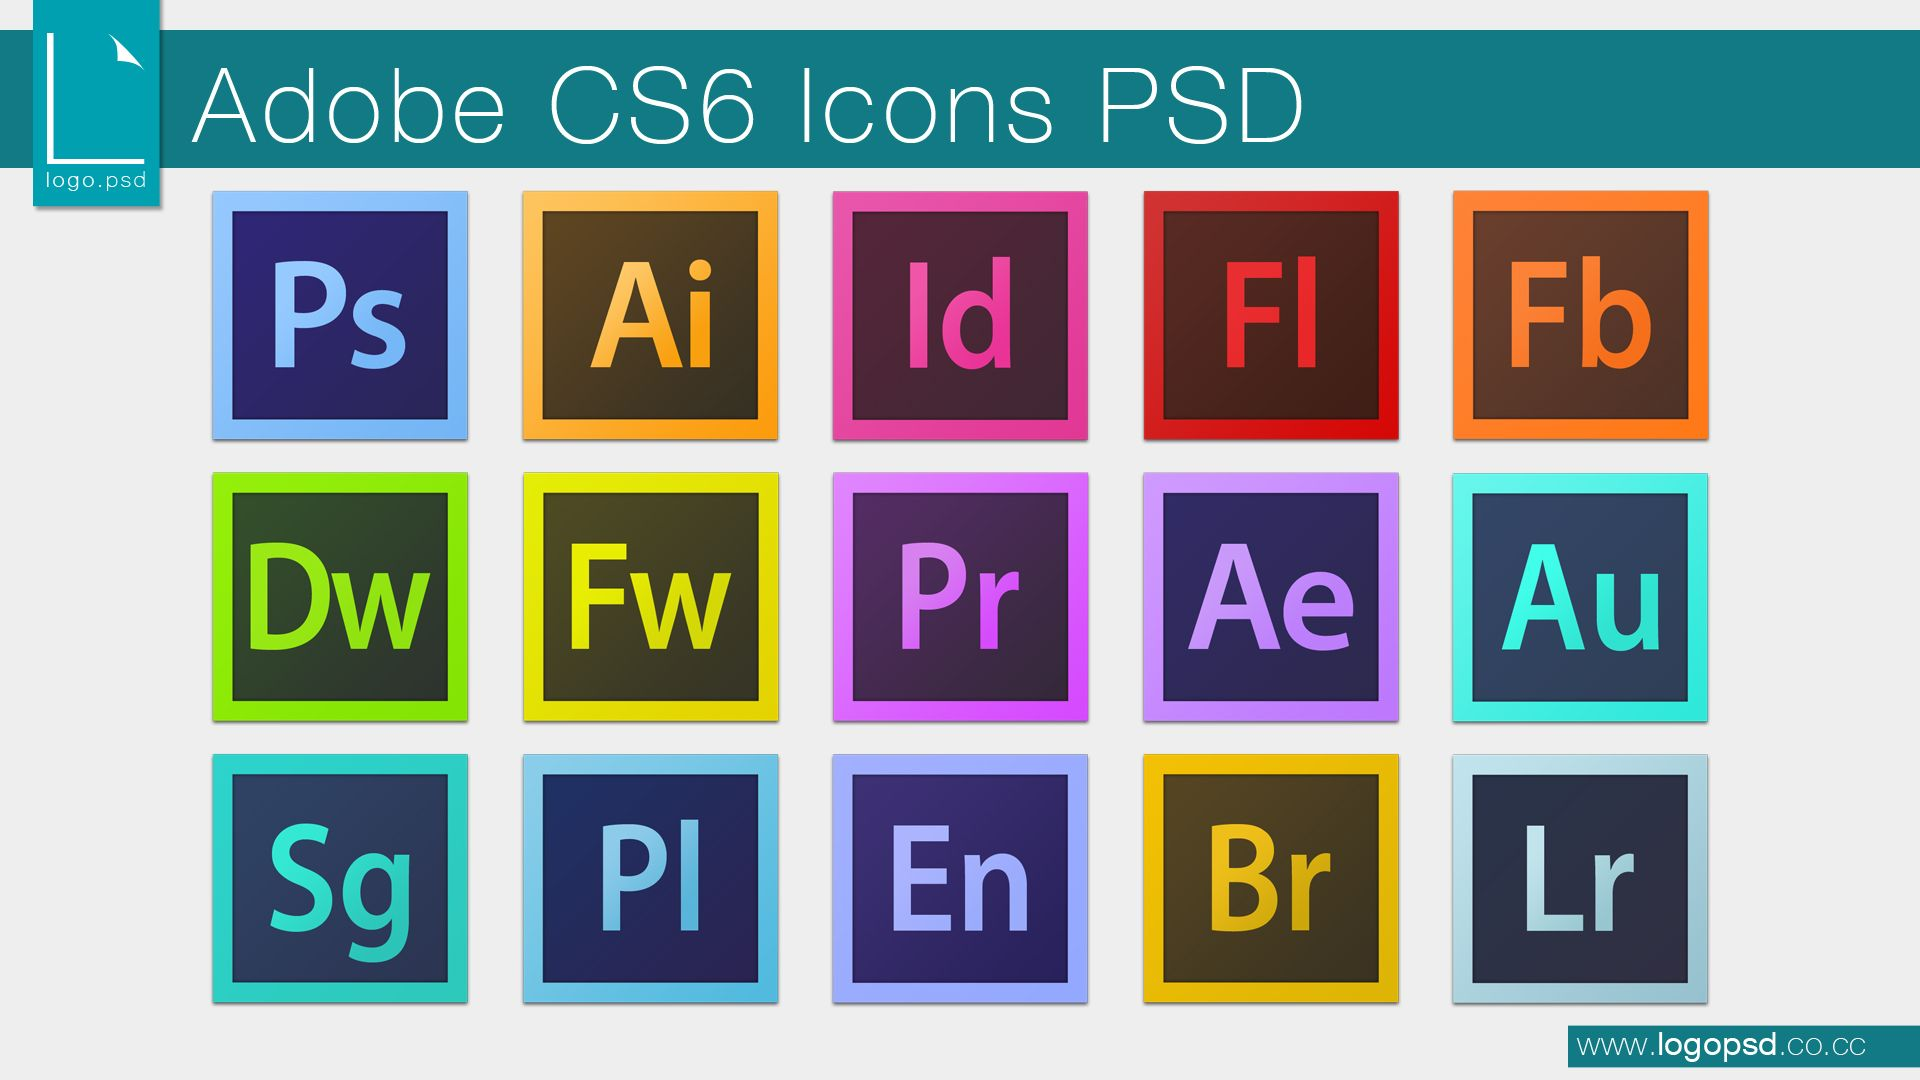 Adobe Cs6 Icons Fully Layered Psd Now Available By